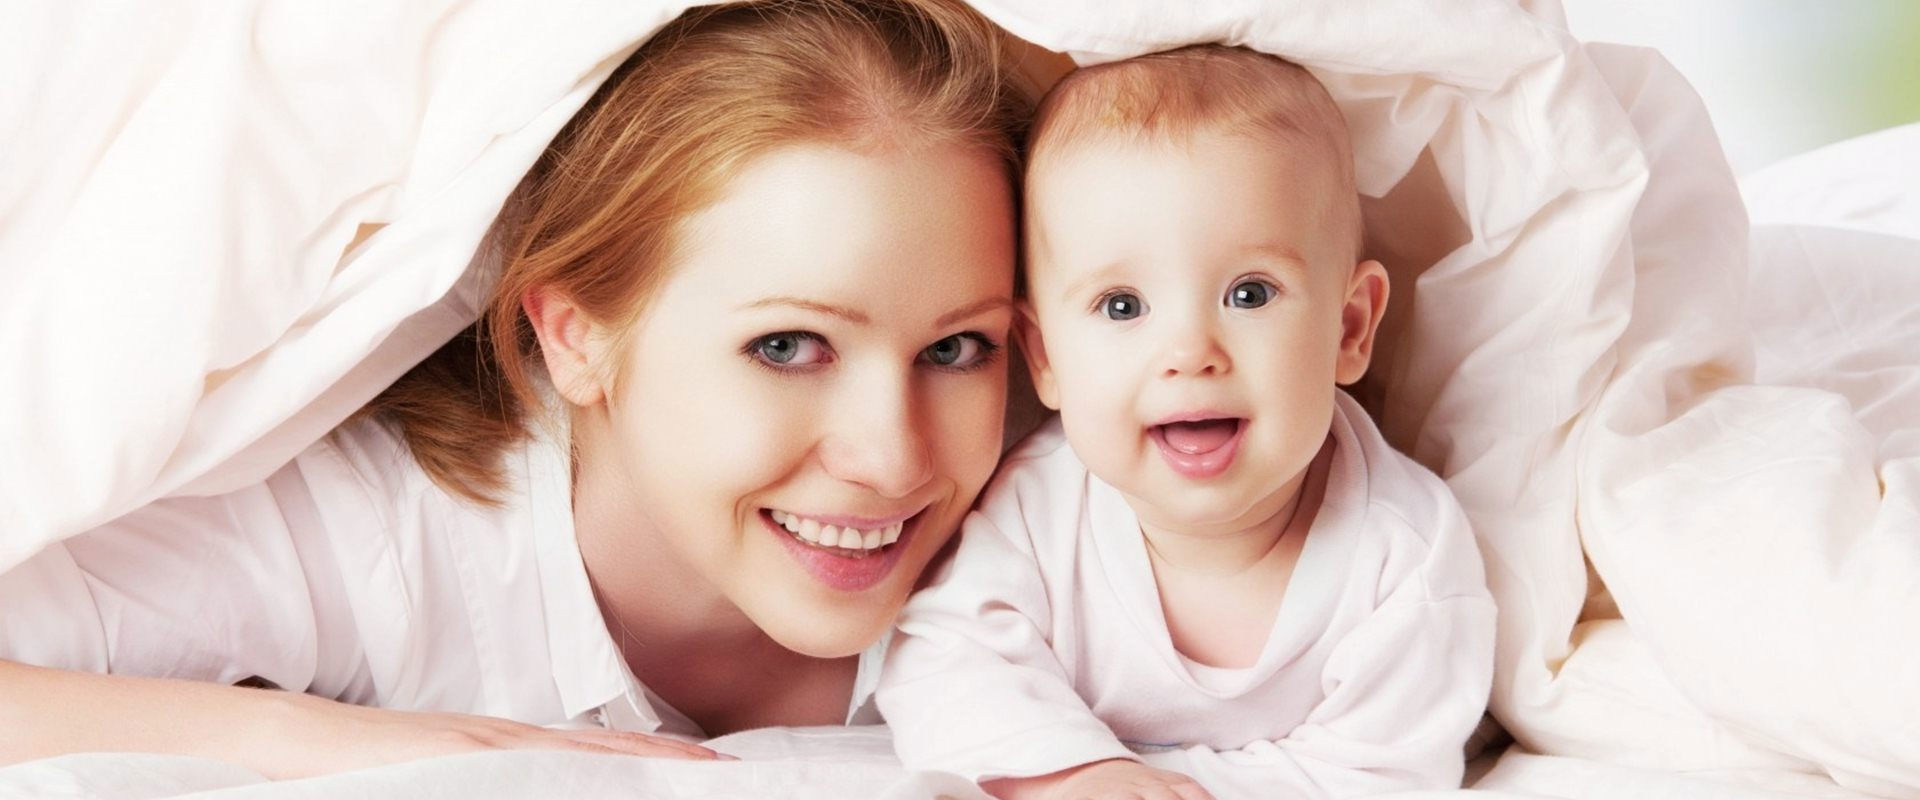 Infertility Treatment Centre Bangalore | Best Fertility Centre  - GynaaeCare